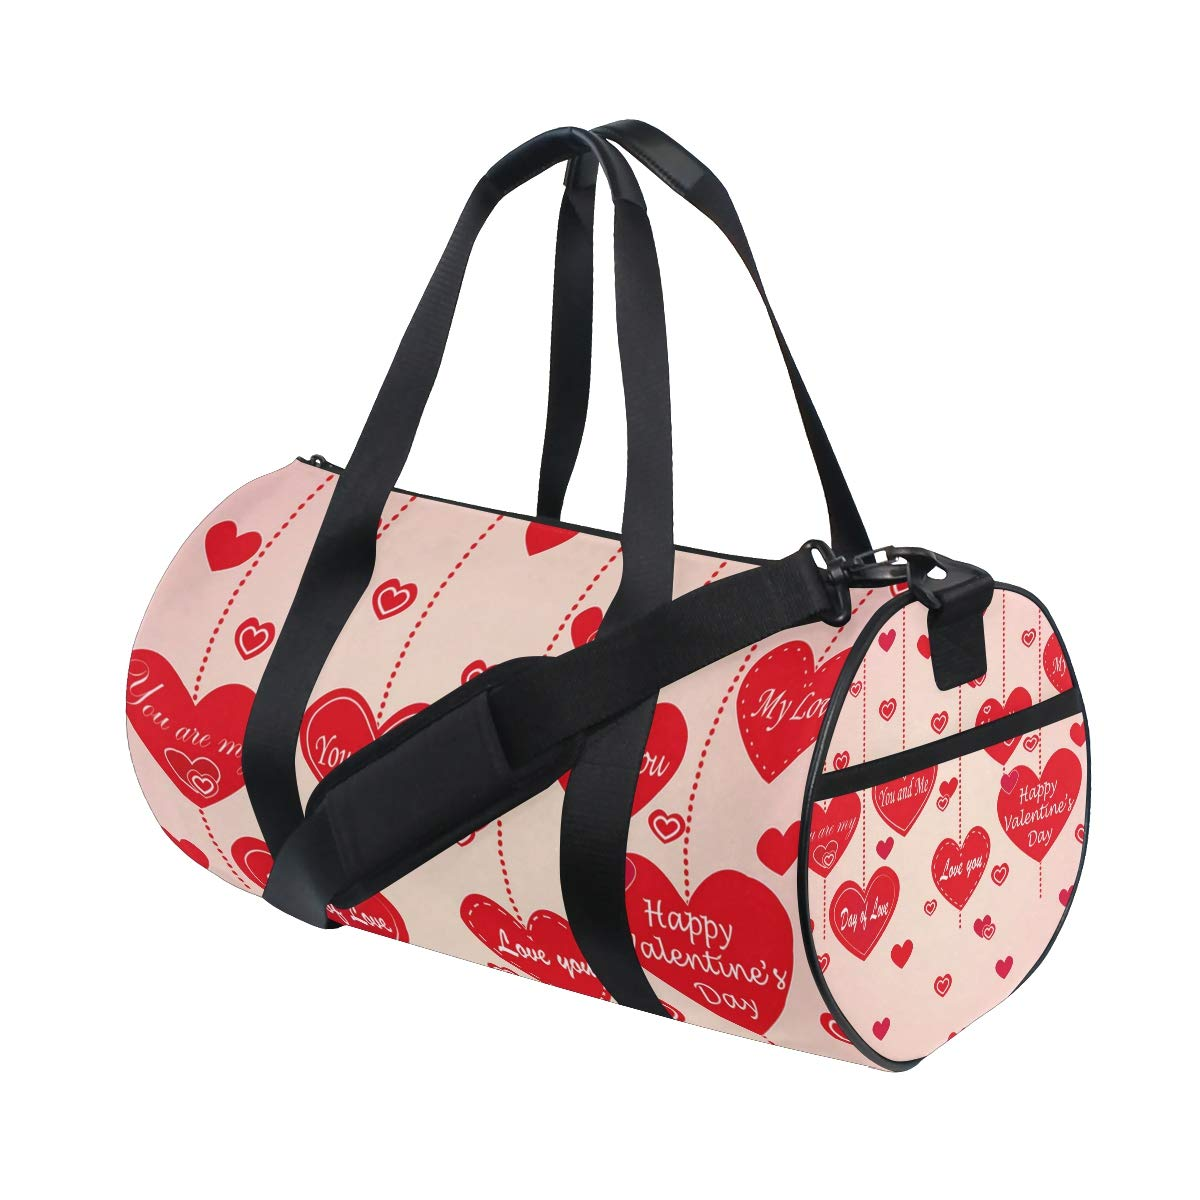 Sports Gym Duffel Barrel Bag Romantic Love Valentines Day Travel Luggage Handbag for Men Women